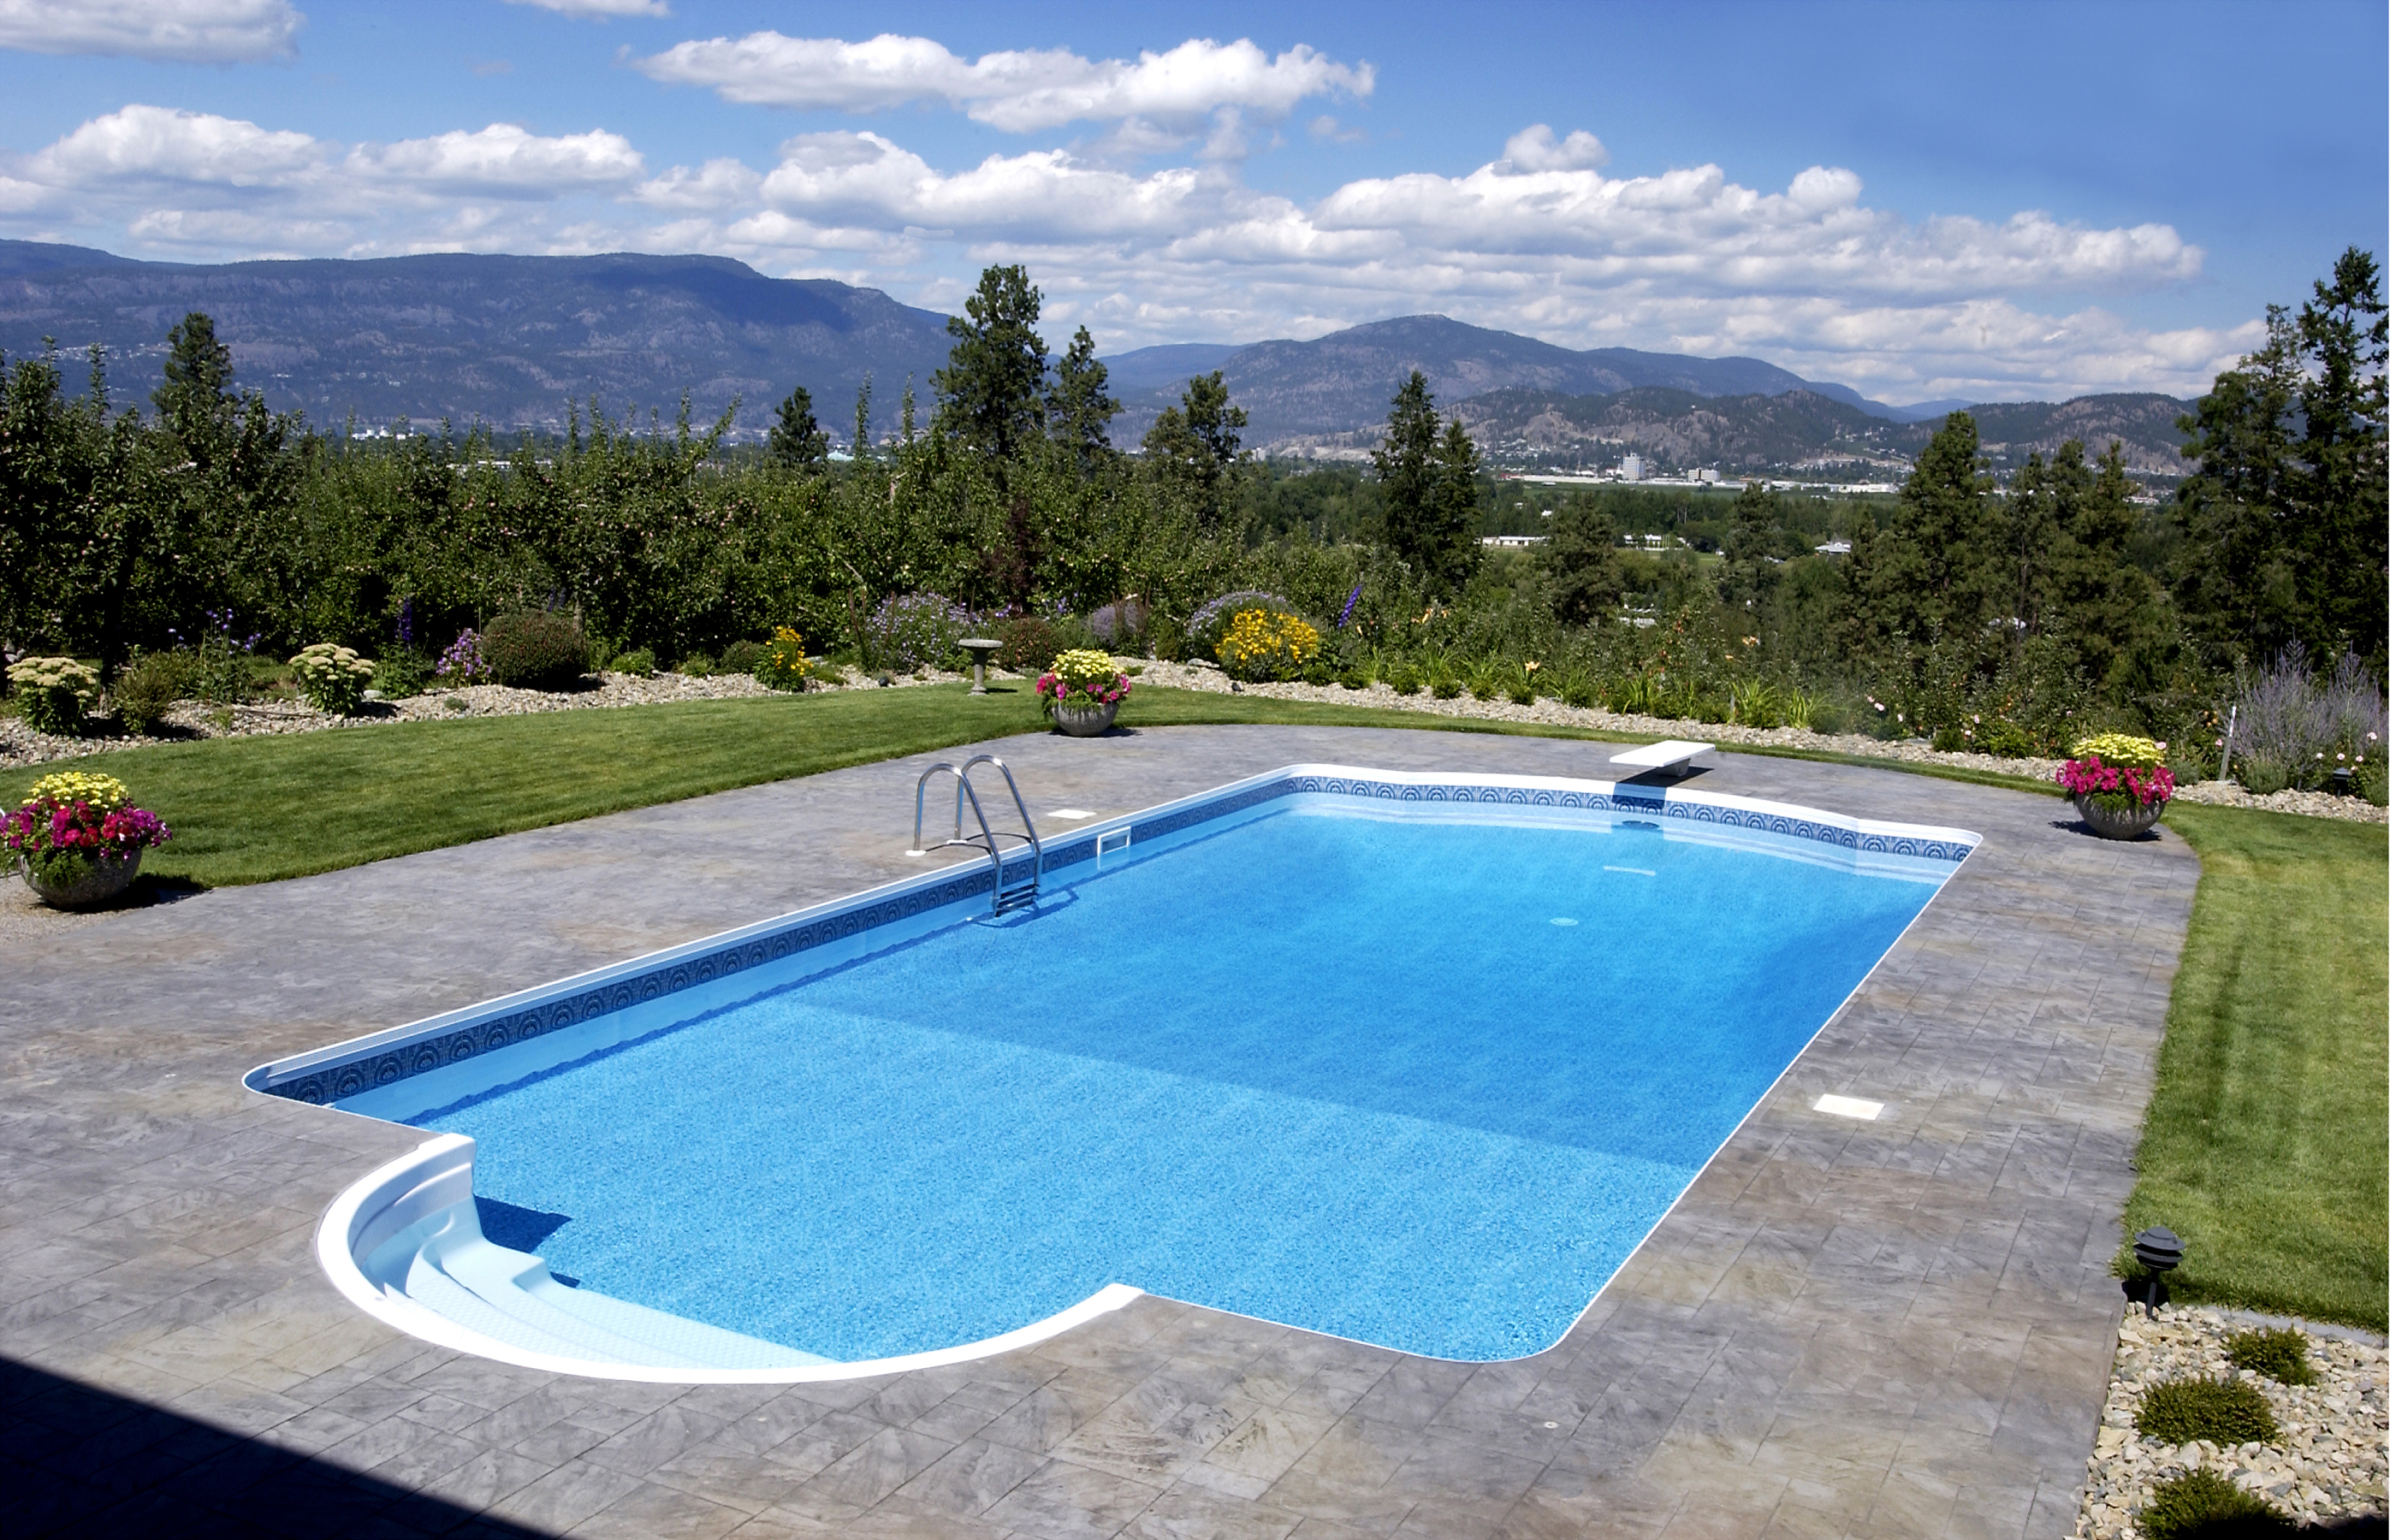 Swimming pool design for your beautiful yard homesfeed for Swimming pool design for home